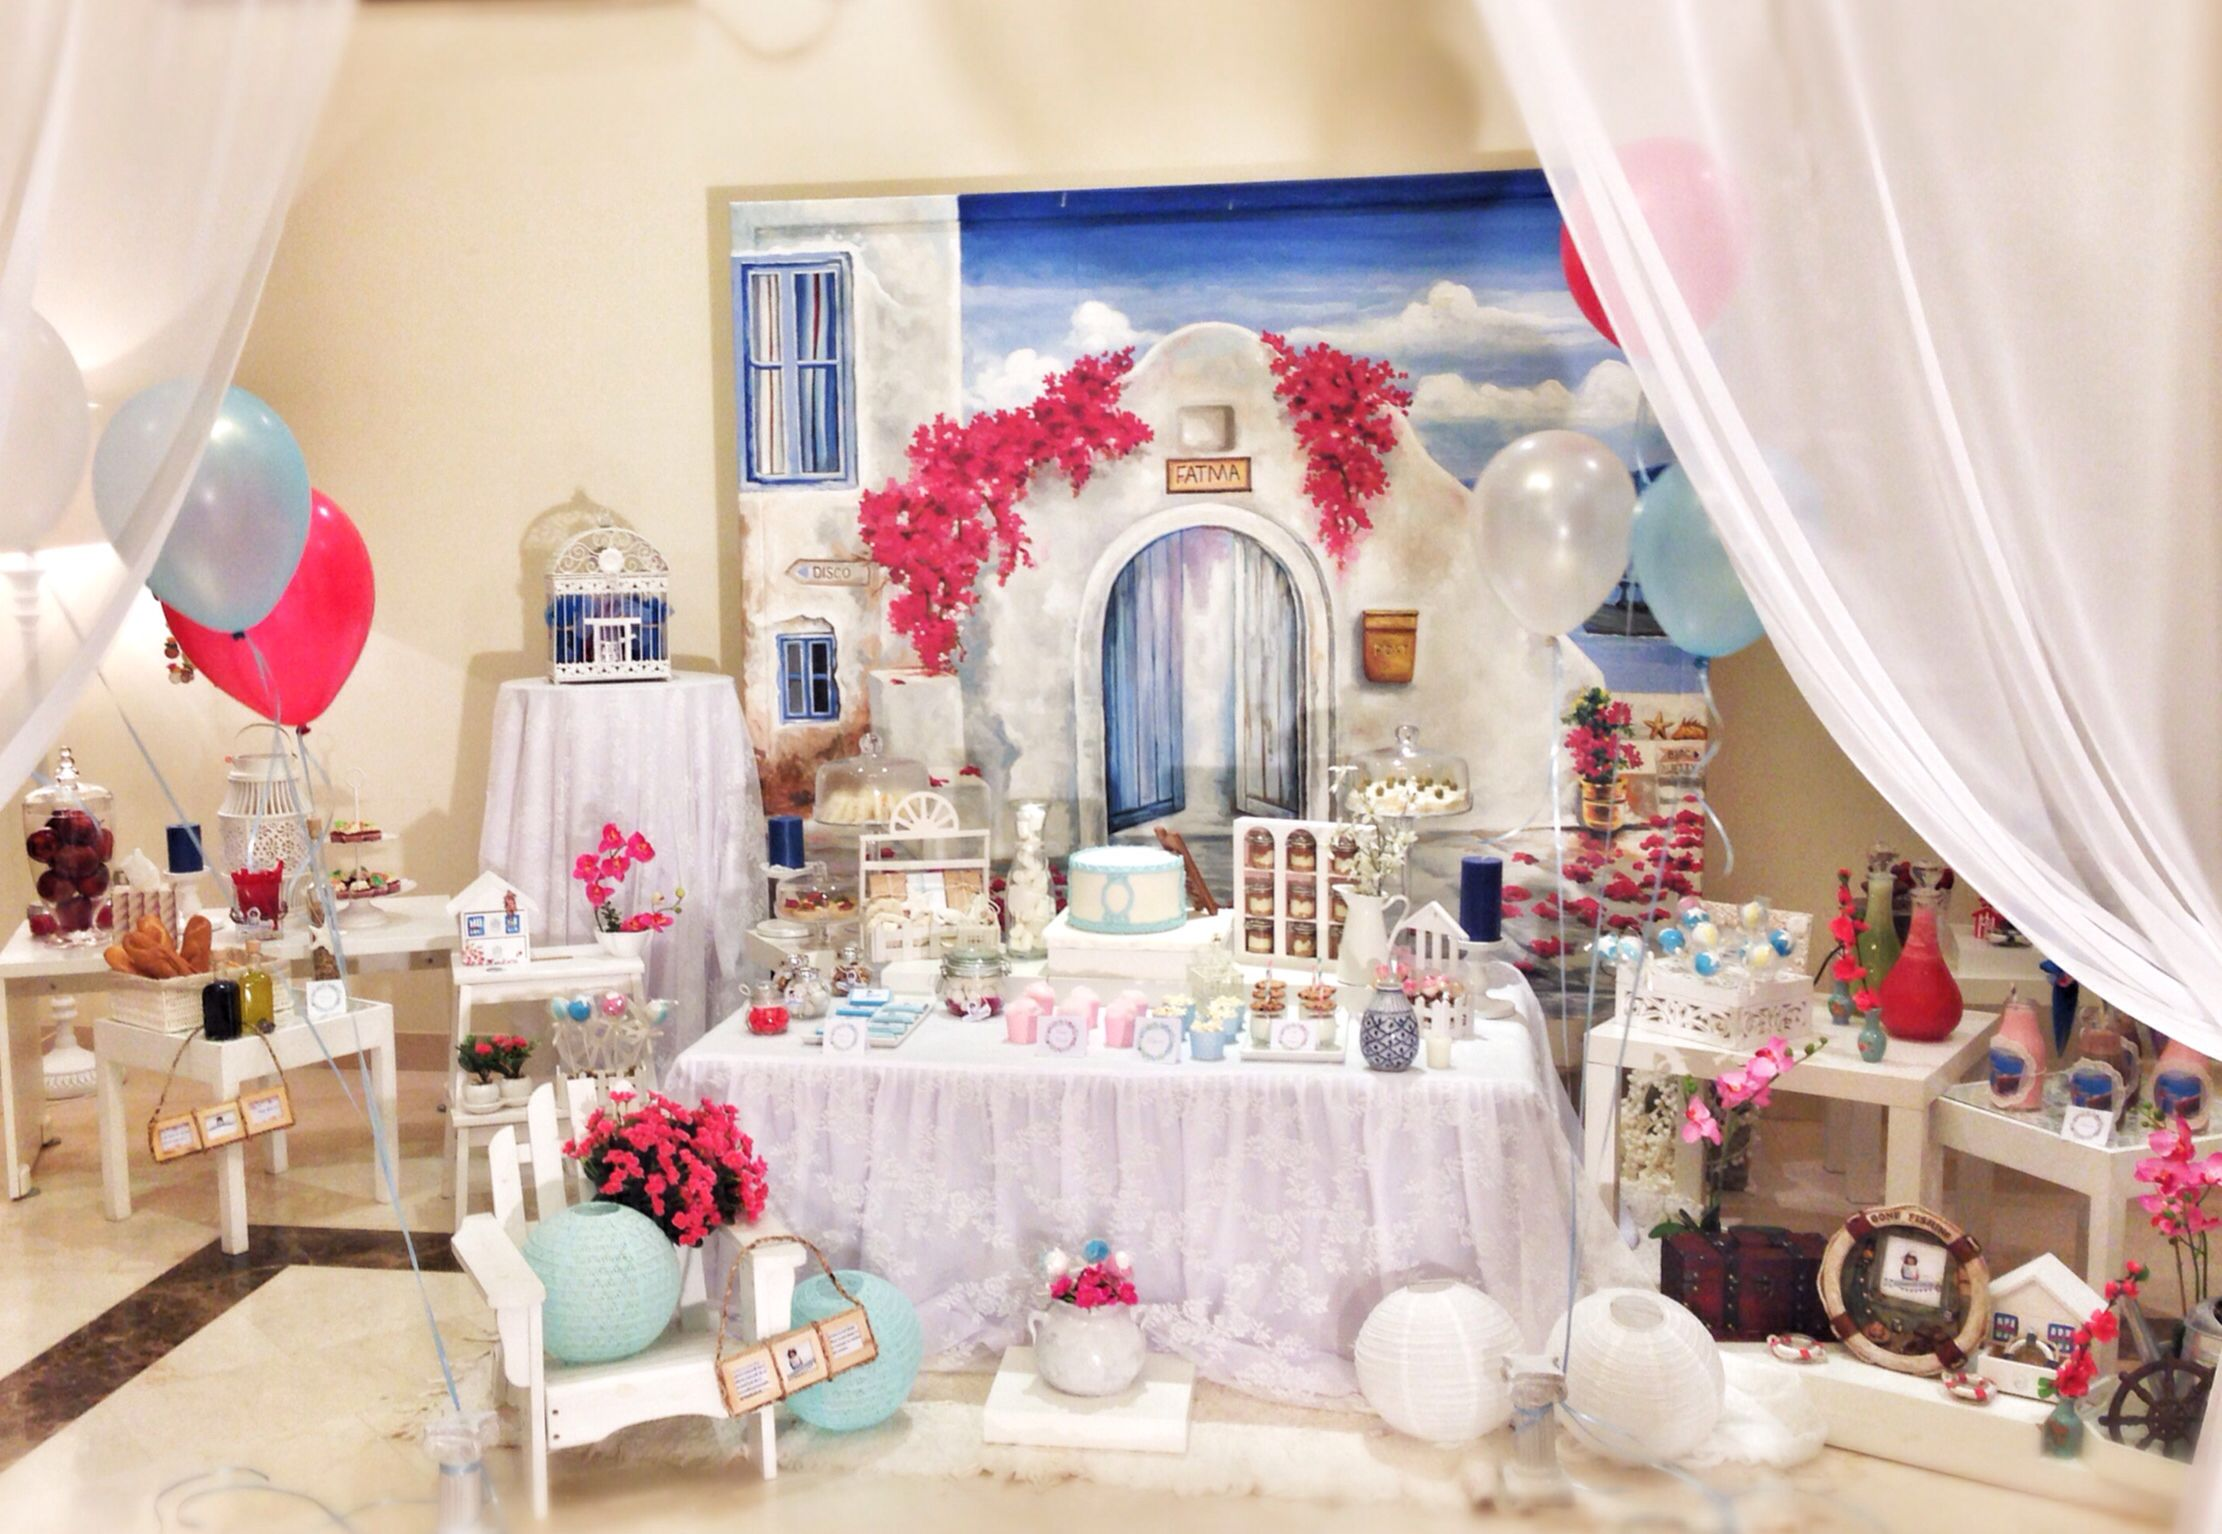 Mamma mia santorini theme party ideas for party for Mia decoracion